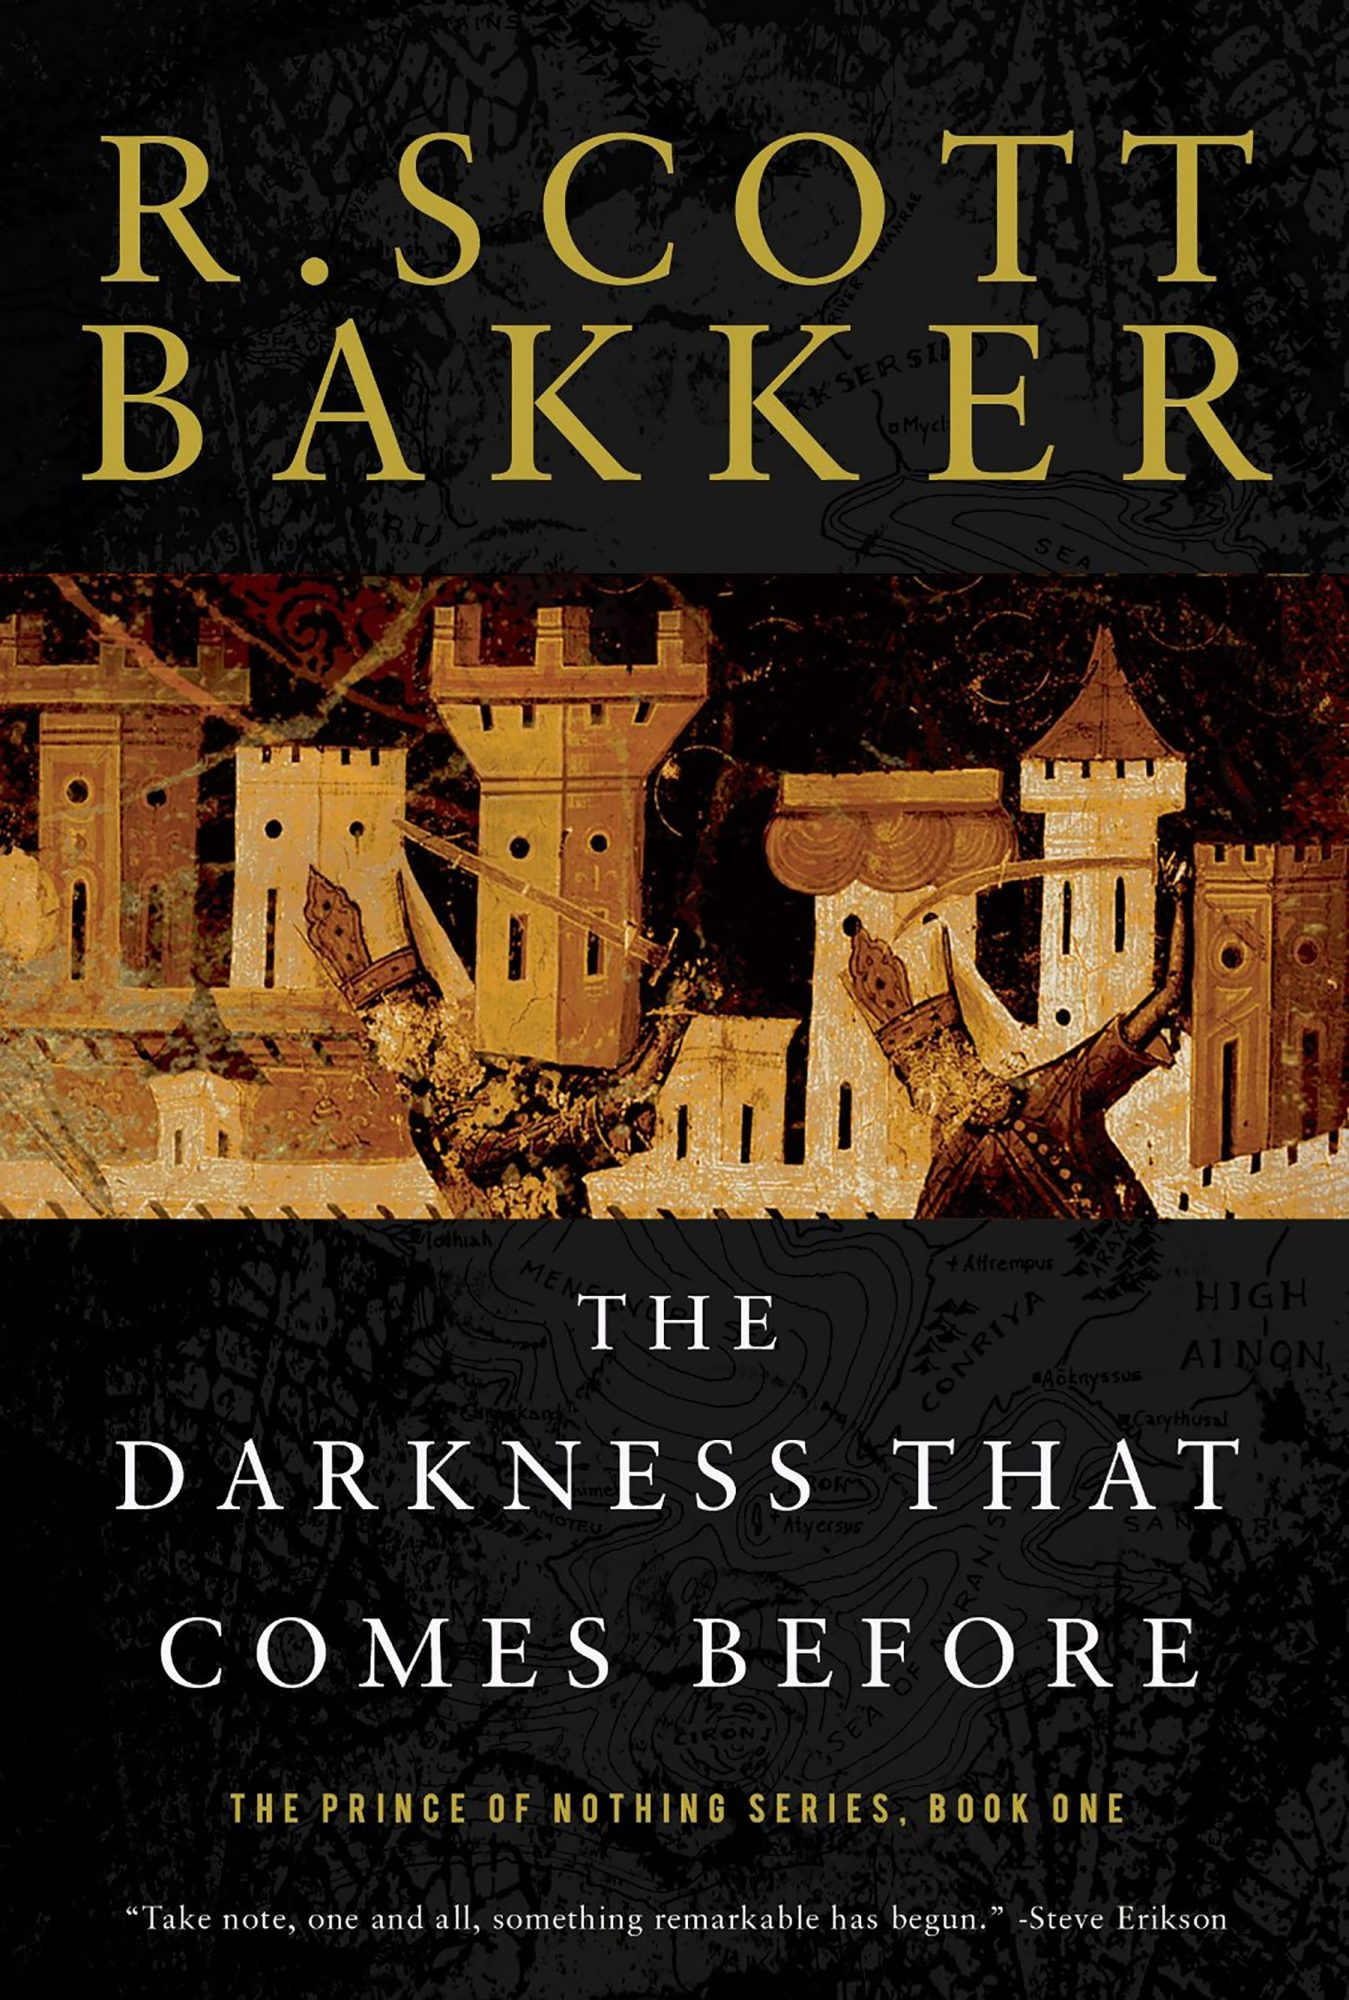 R. Scott Bakker, The Darkness That Comes Before